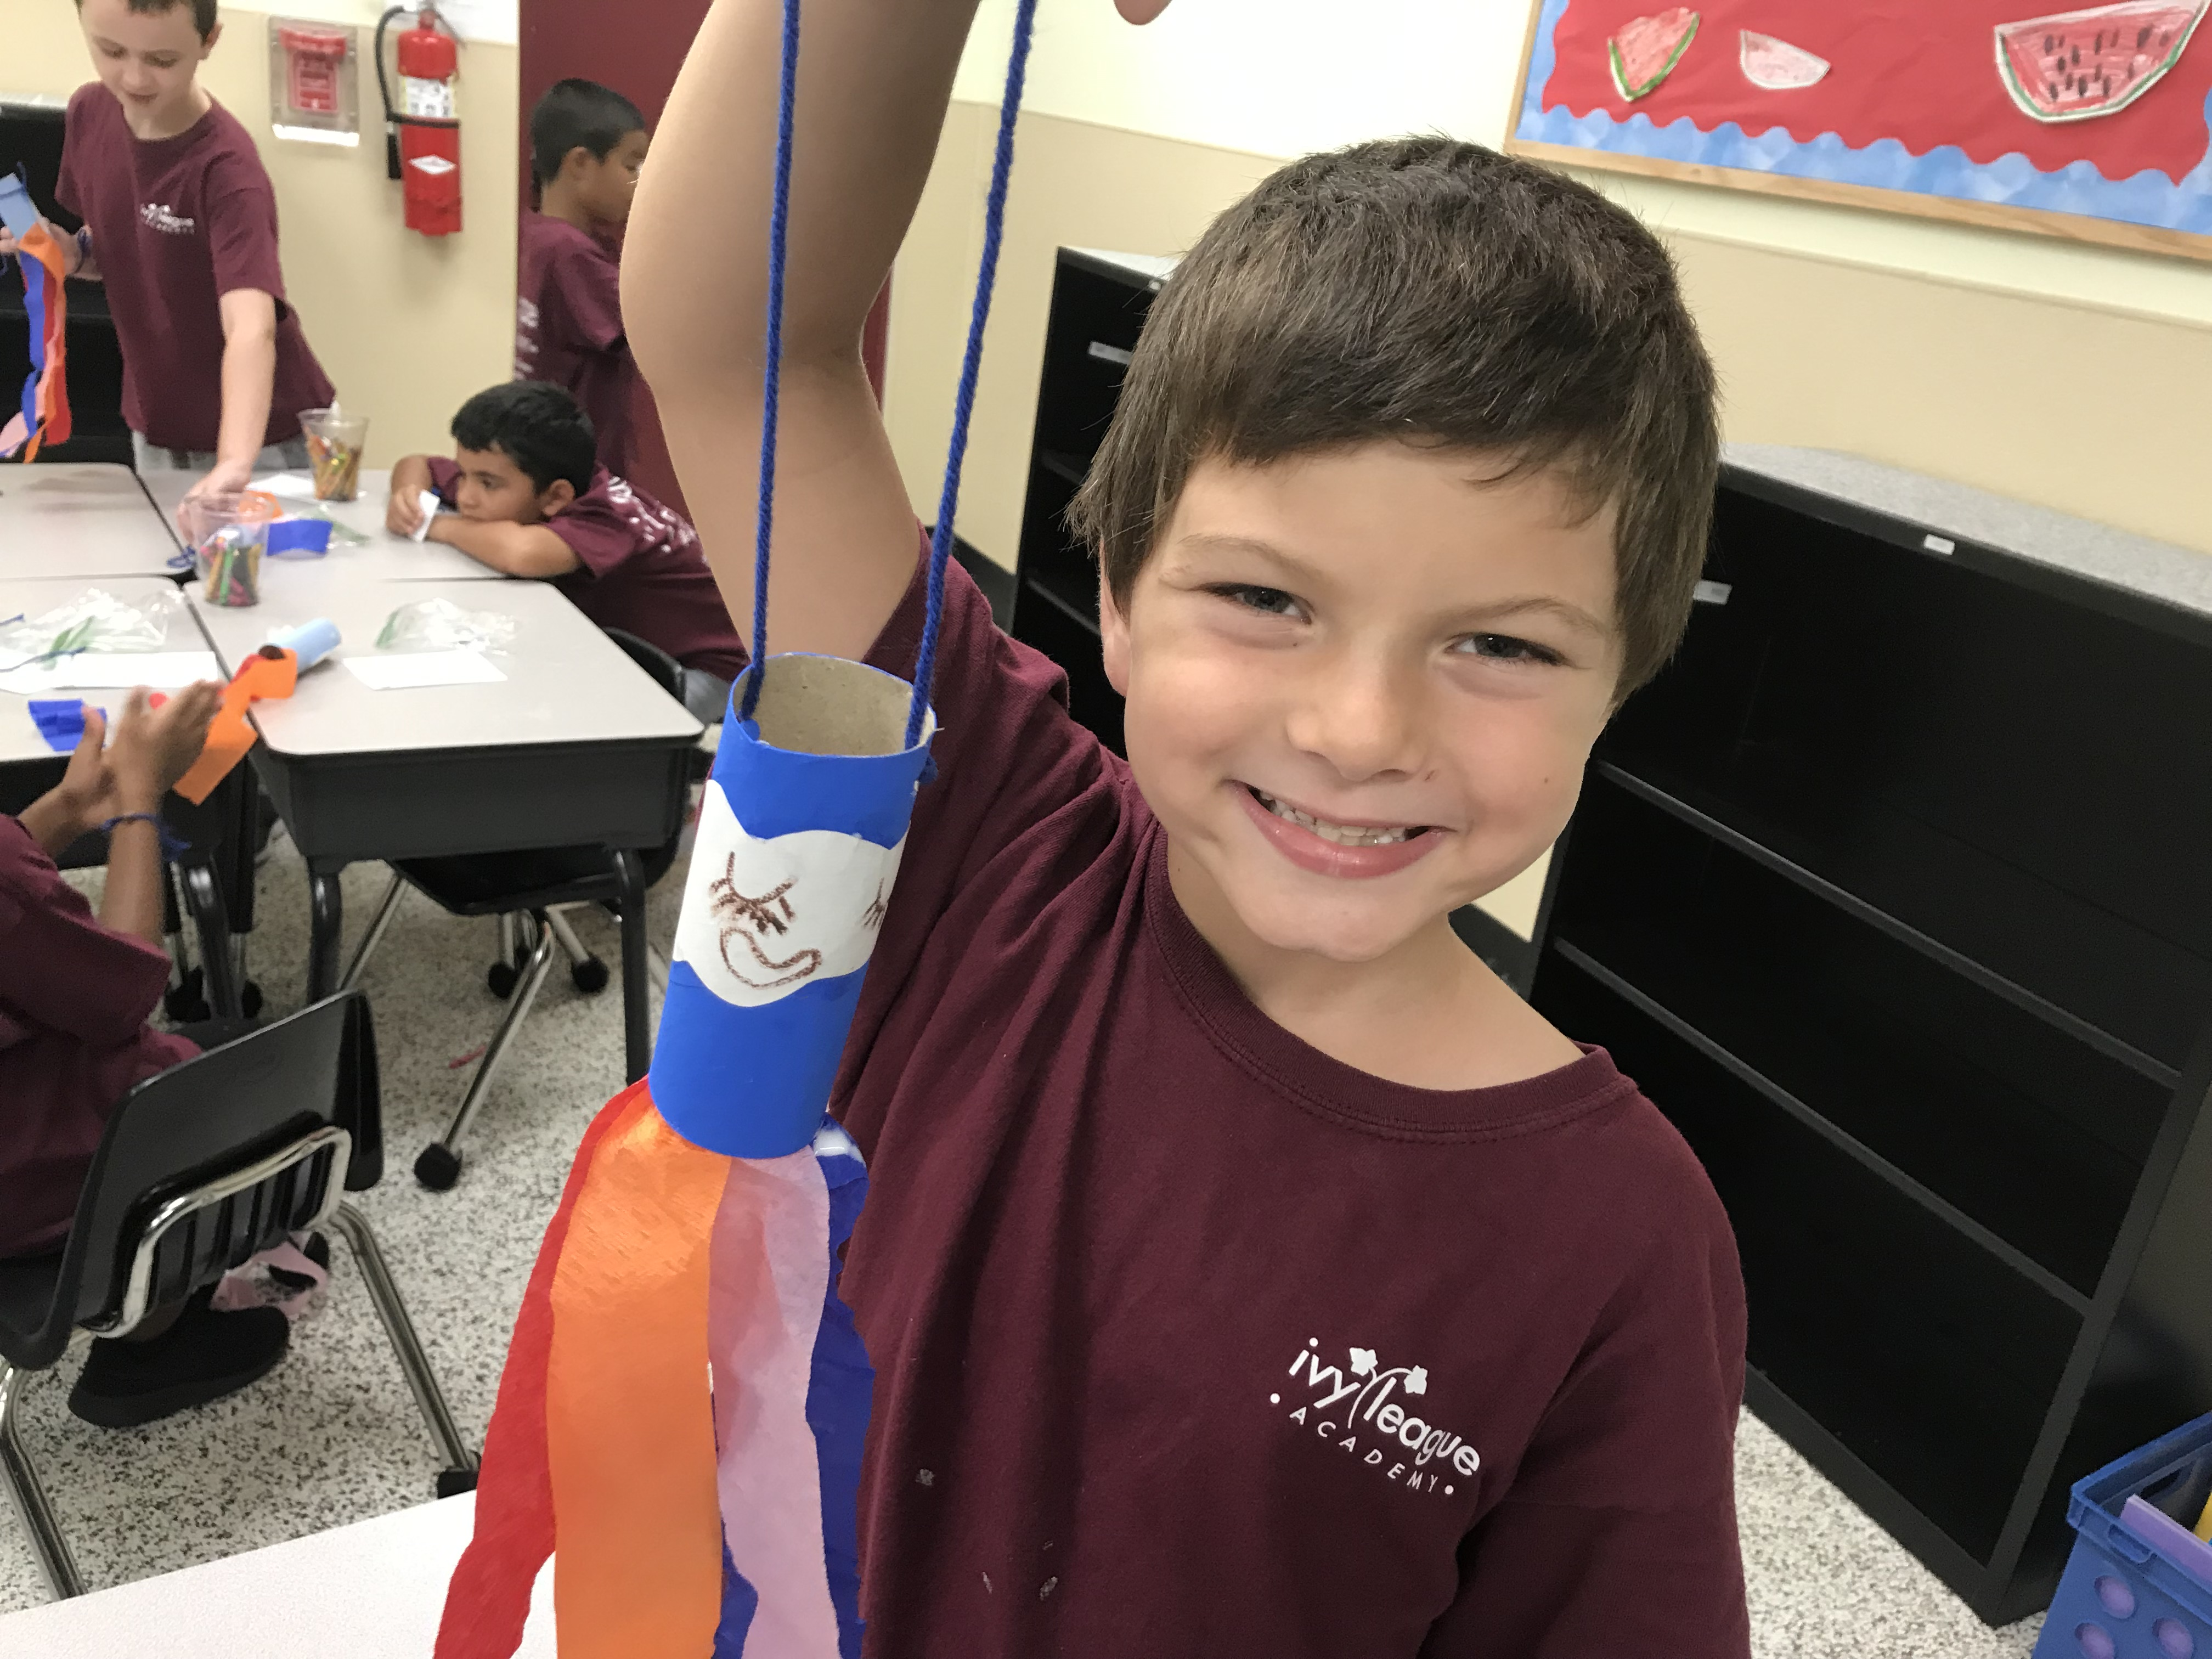 Young boy shows off his rainbow toilet paper roll craft